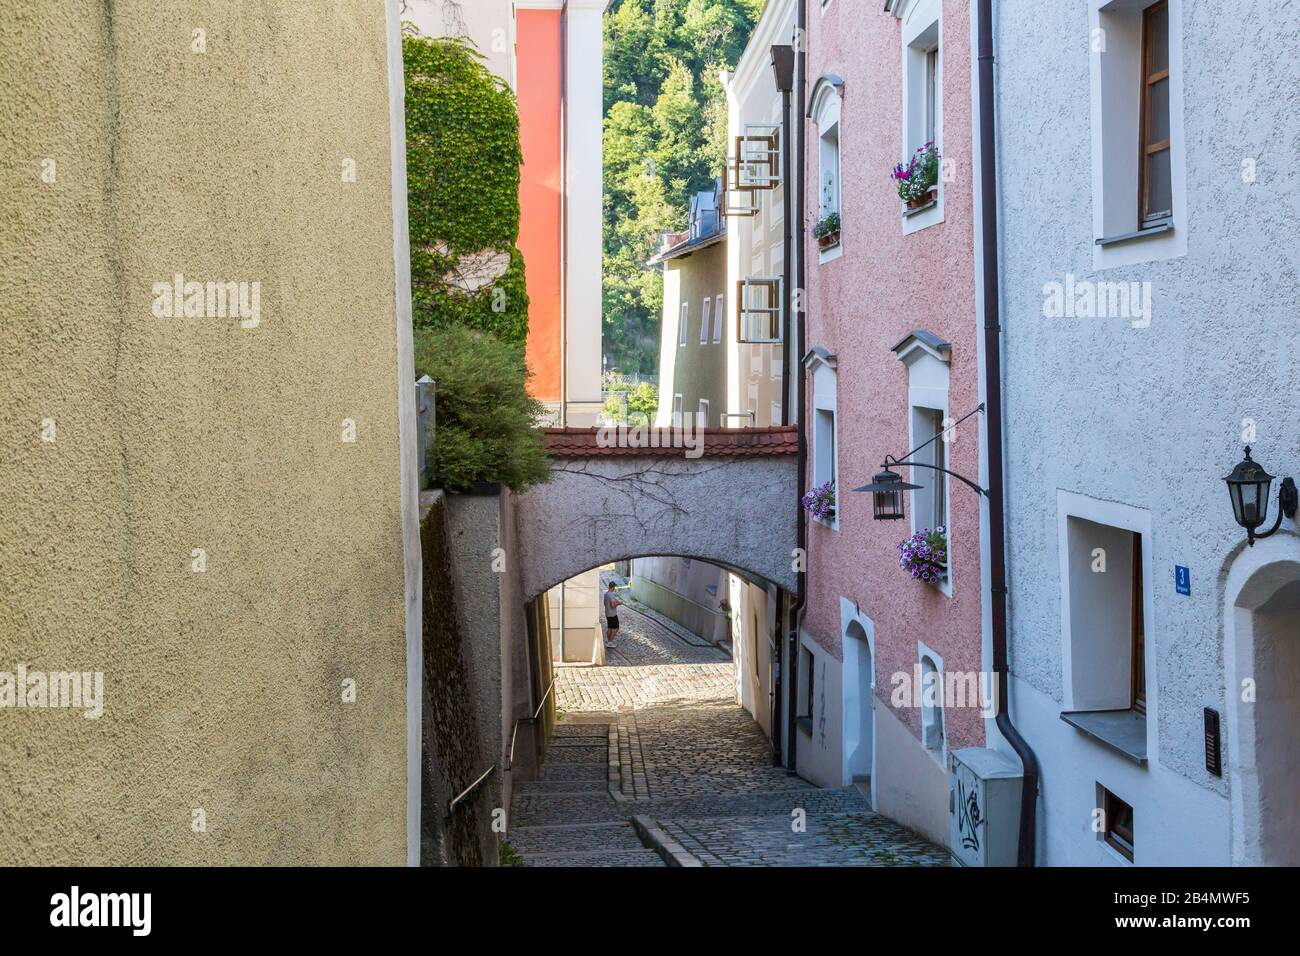 Quaint narrow cobbled lane in Passau, Bavaria, Germany in summer with arch between the buildings and view to trees Stock Photo